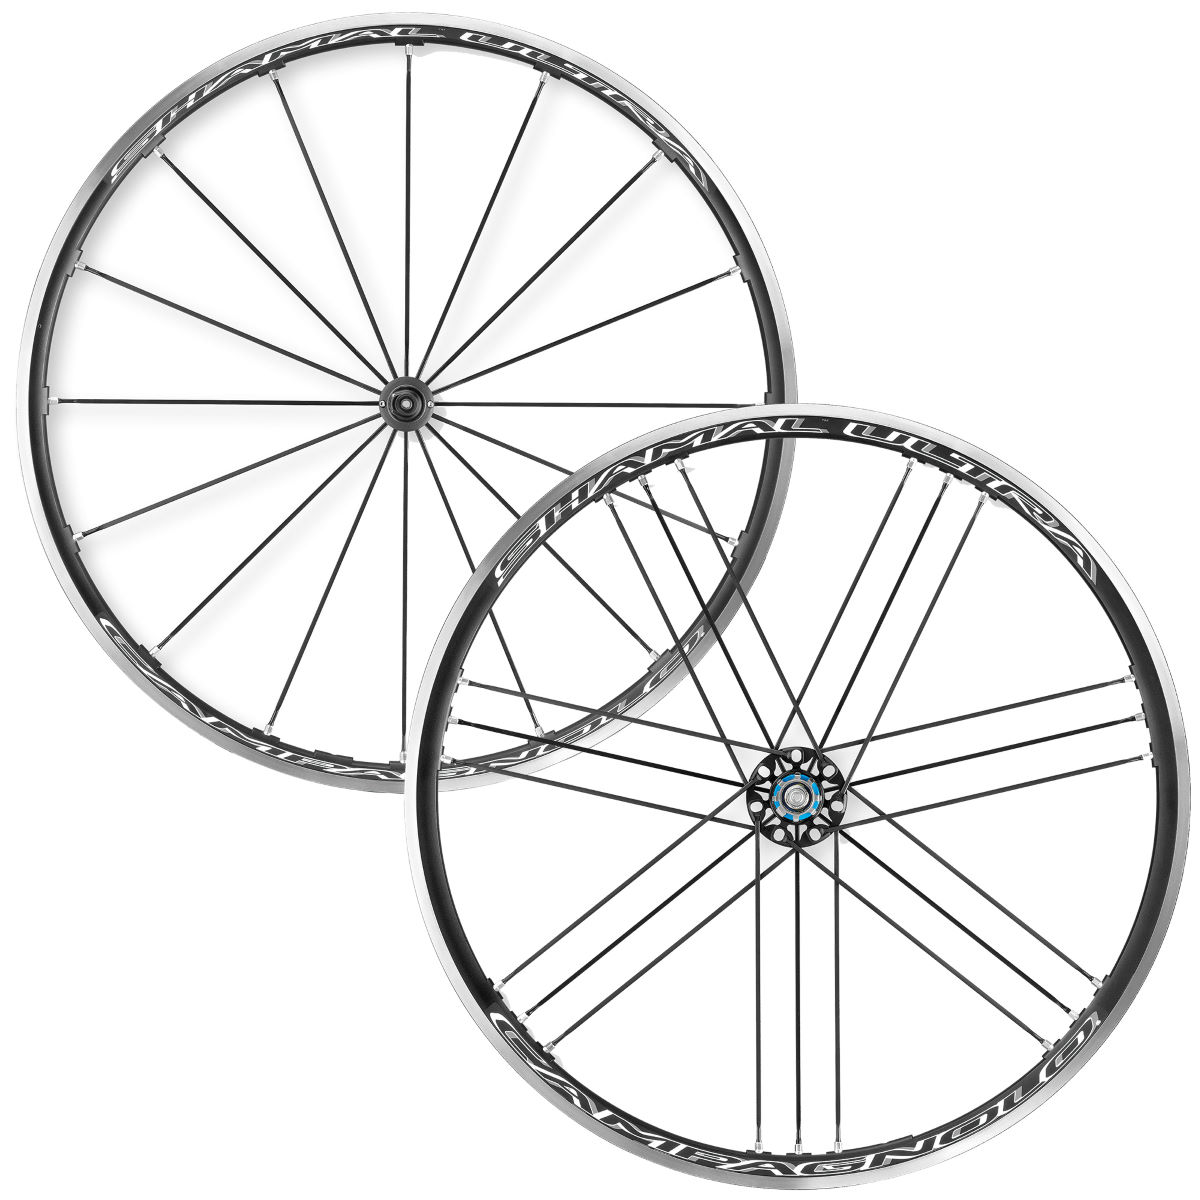 Campagnolo Shamal Ultra wielenset C17 2-Way Fit - wielsets